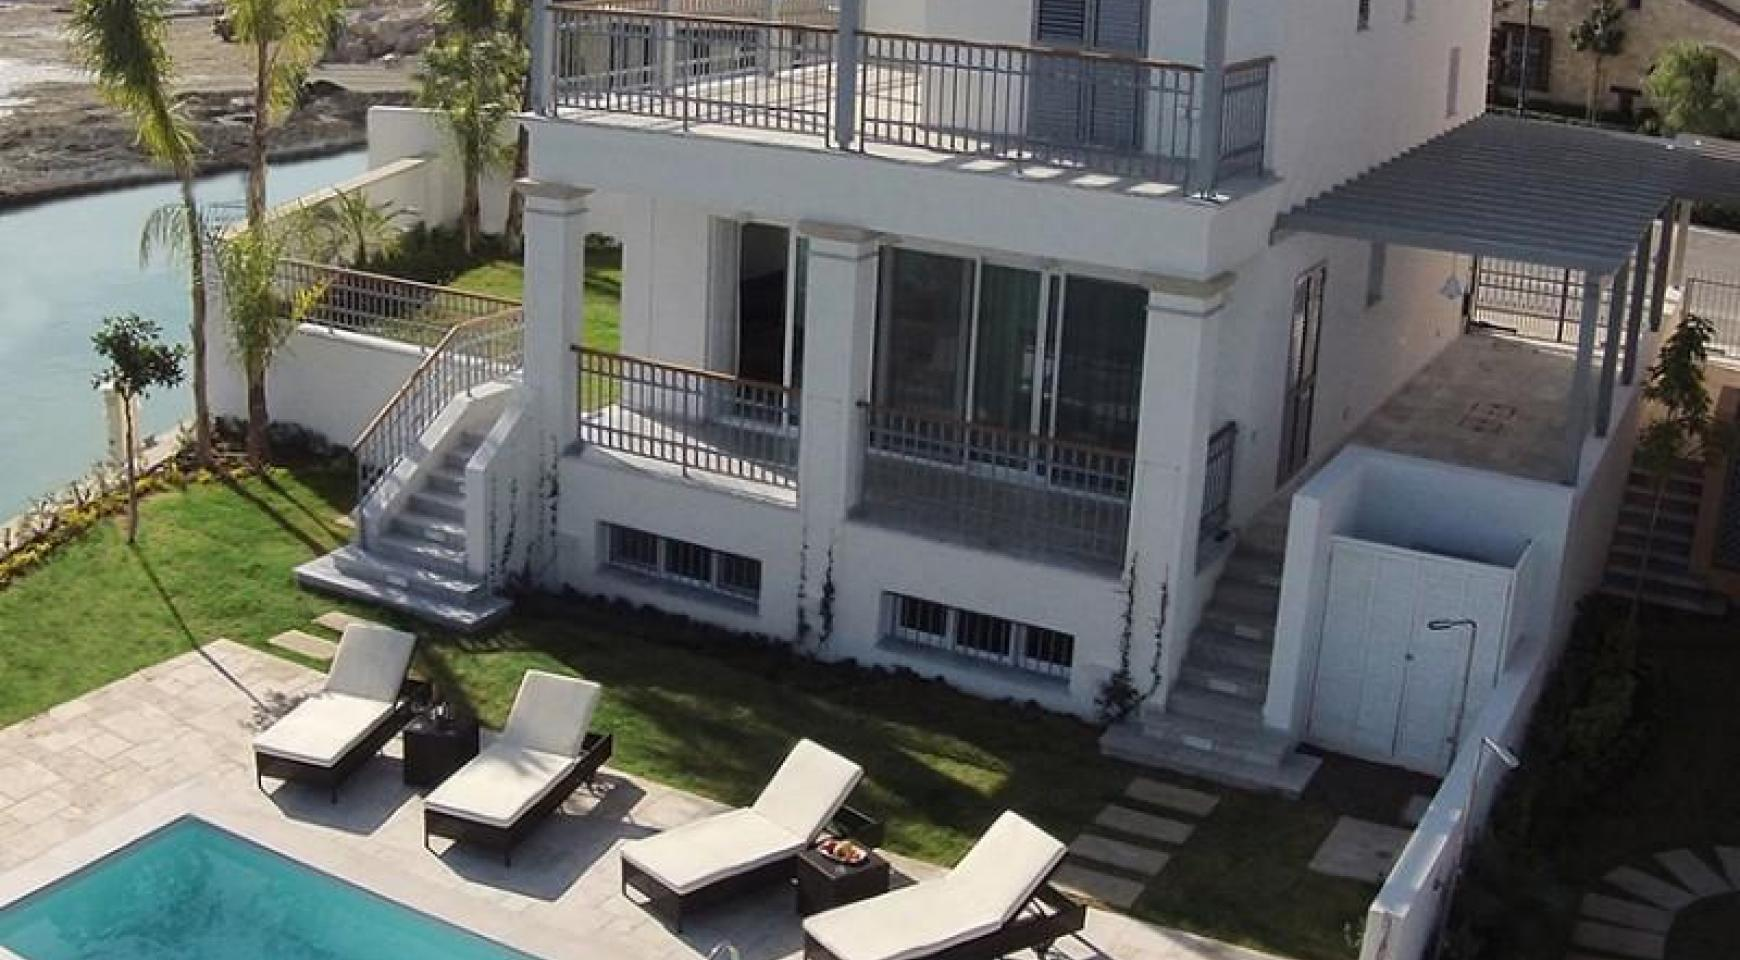 Luxurious 3 Bedroom Villa in an Exclusive development by the Sea - 4